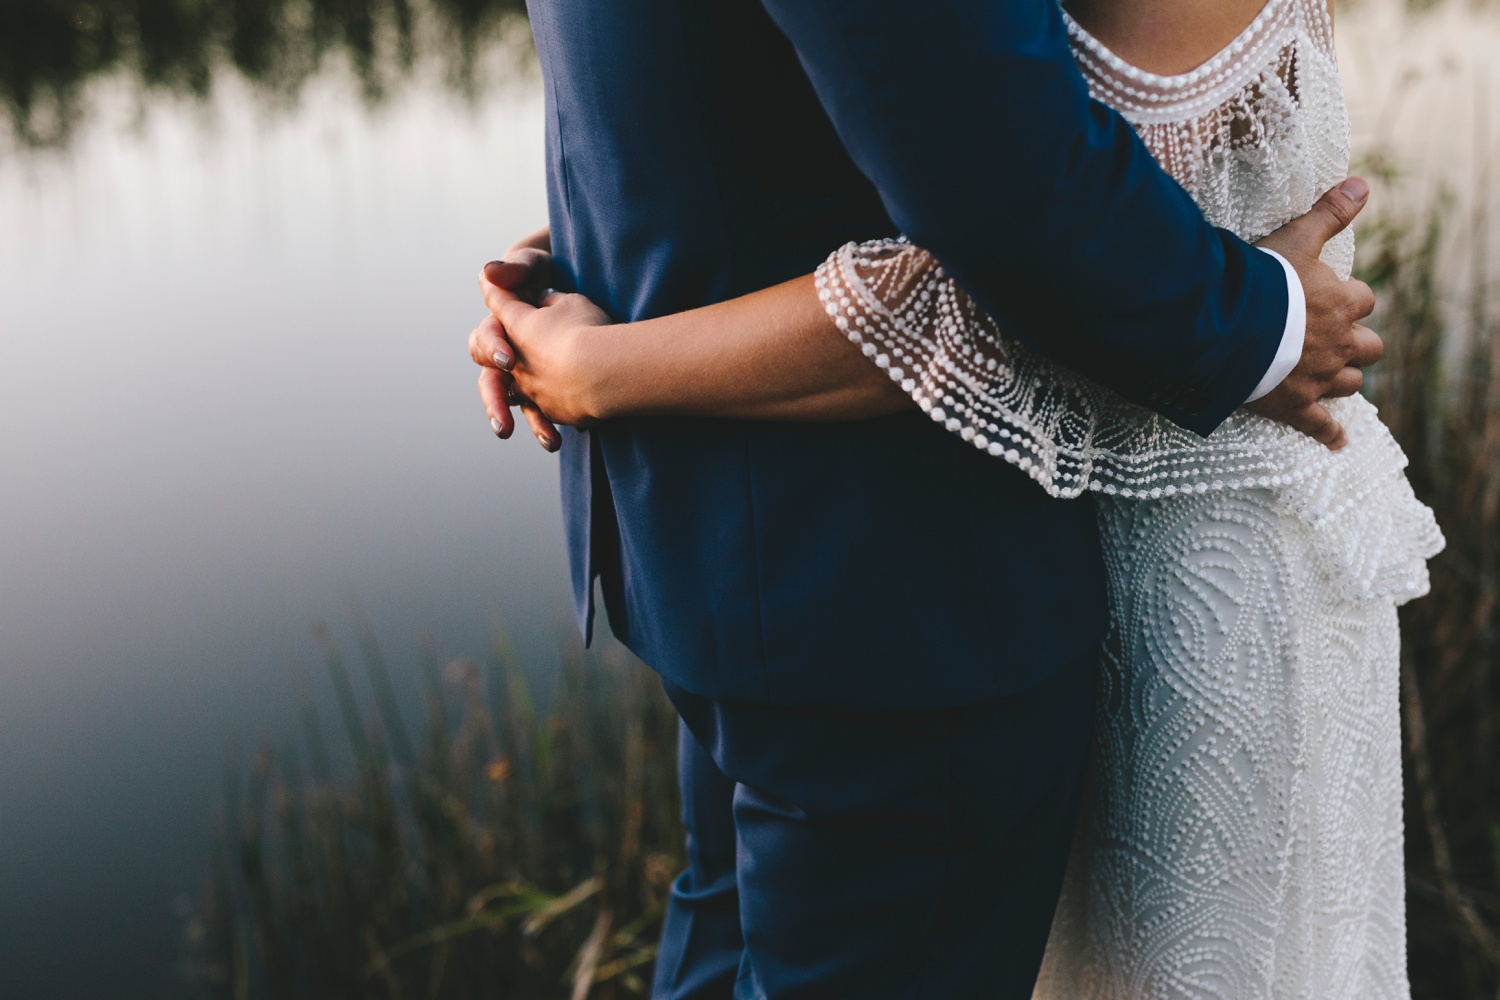 charlie_ray_photography_runaway_romance_elopement_emily_moon_plett_simple_boho_wedding_south_africa_bohemium_0102.jpg